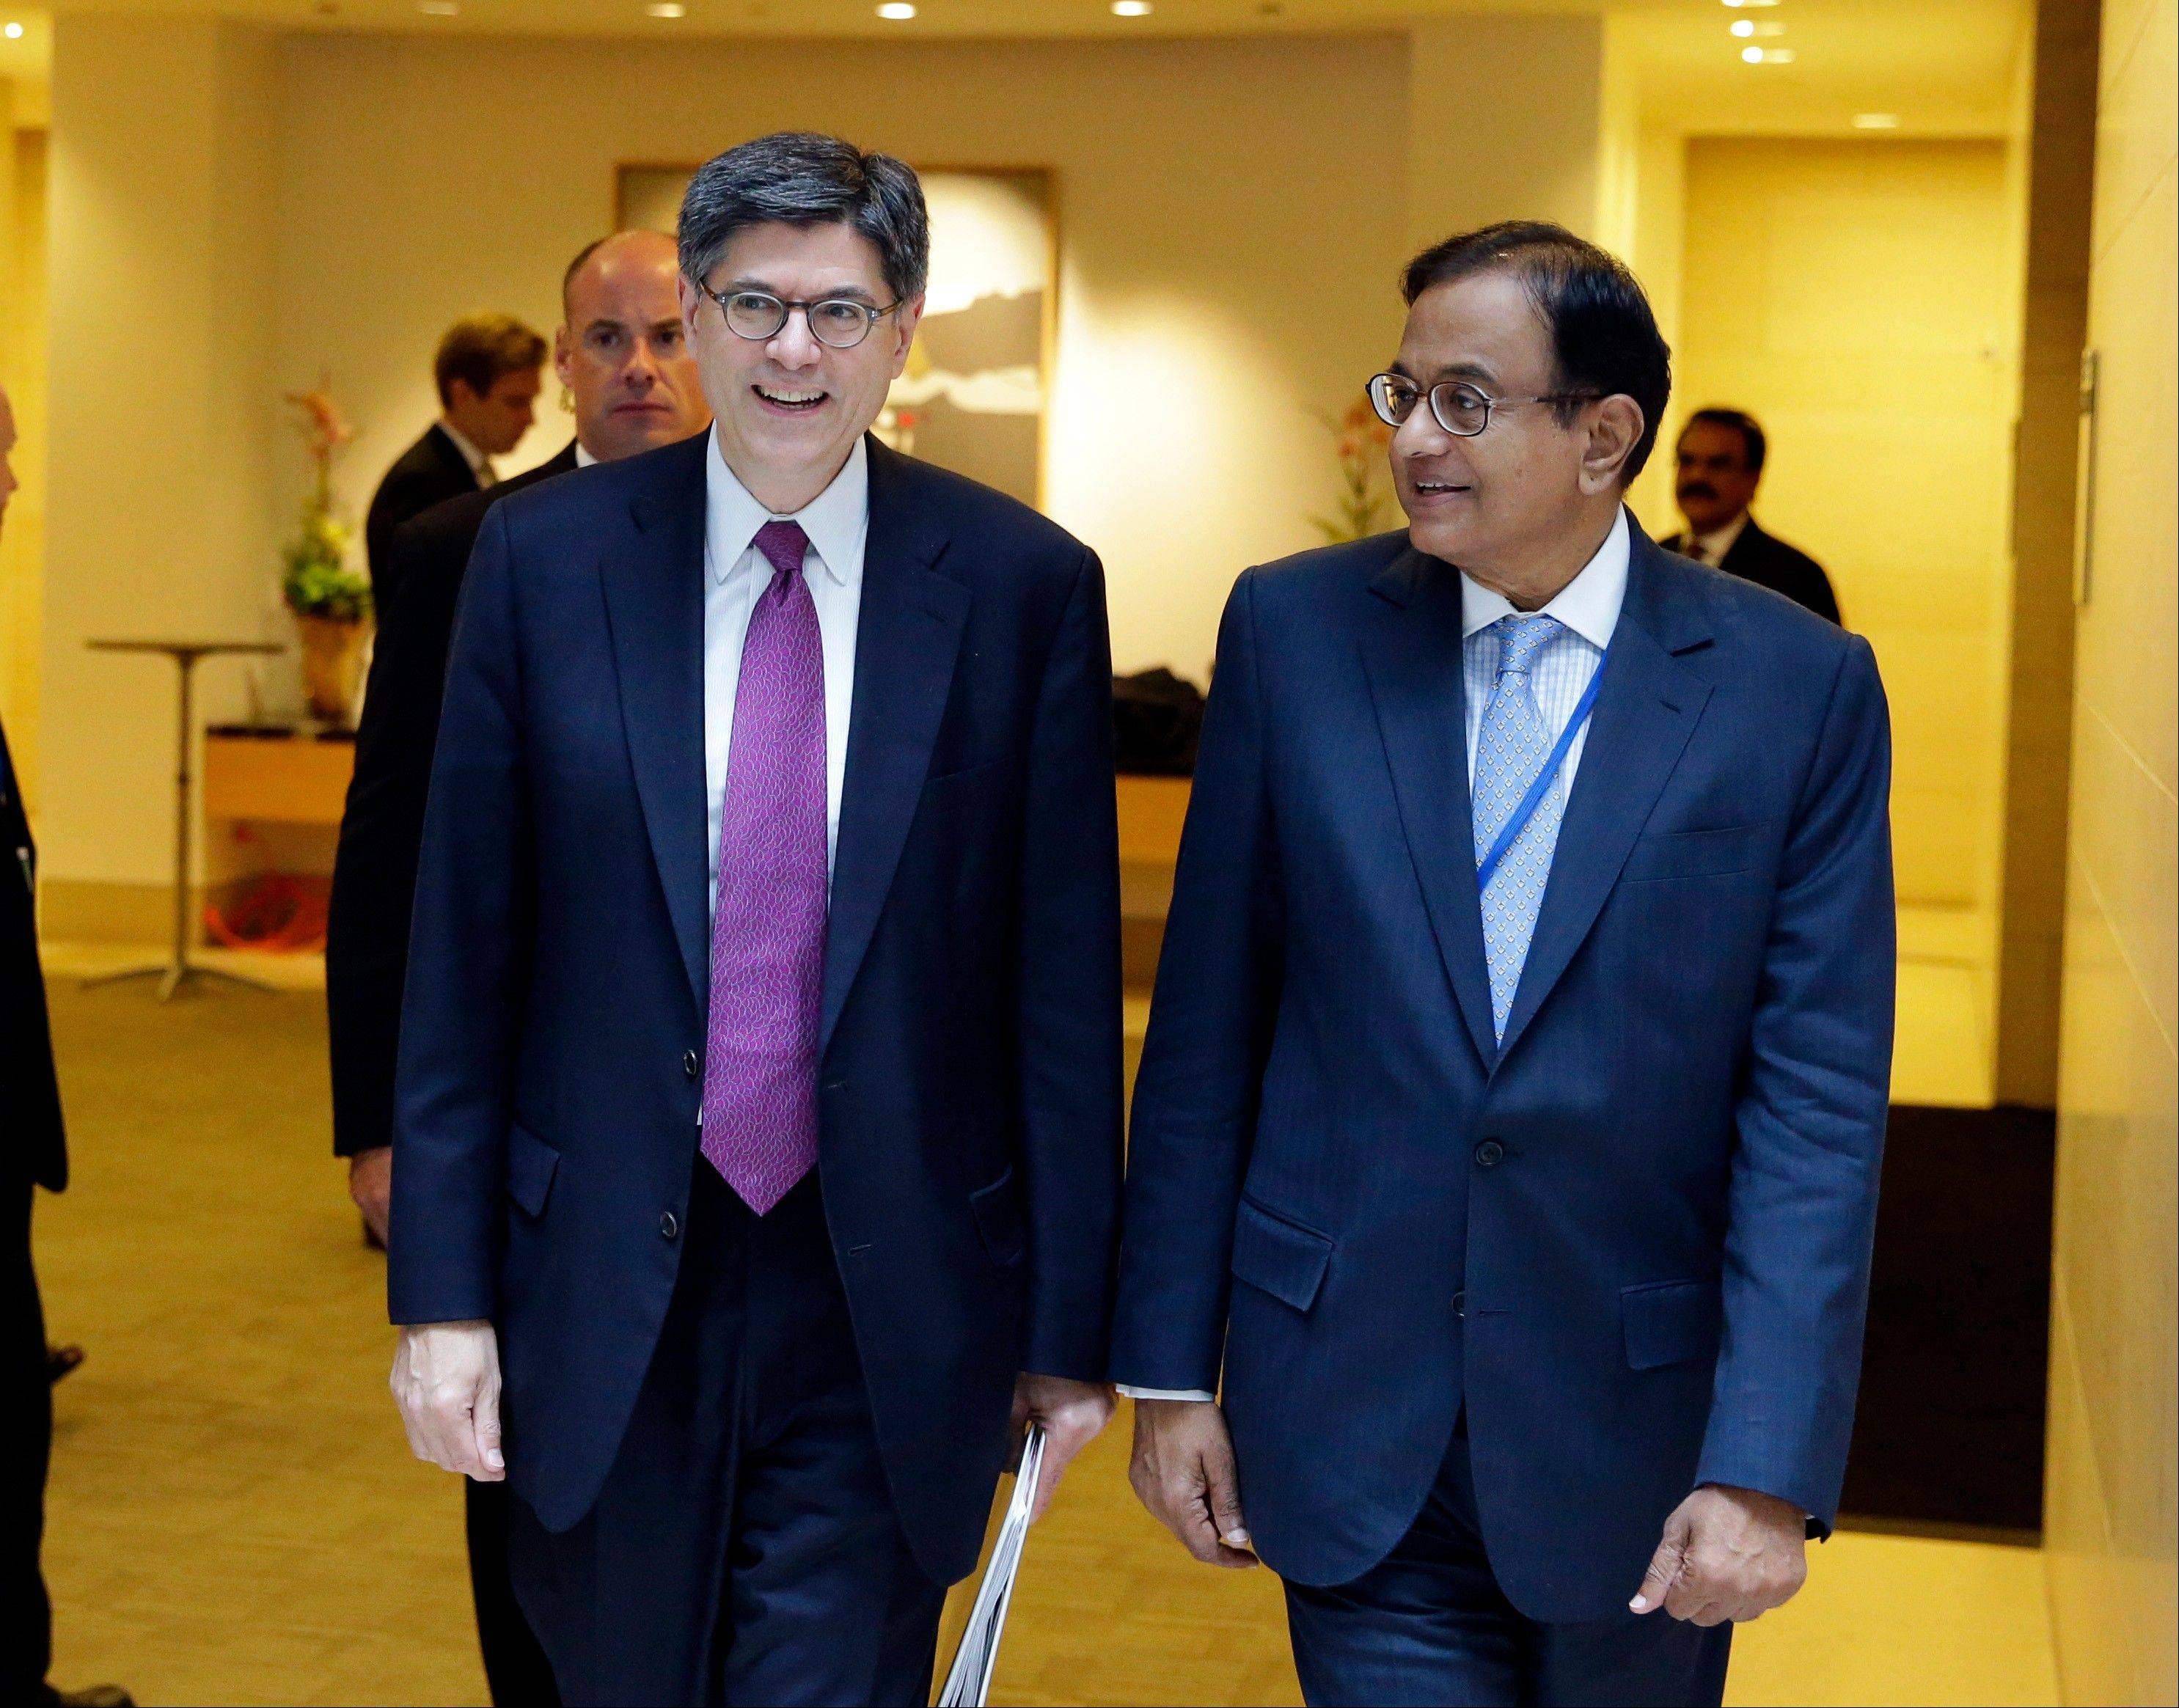 Jacob Lew, left, U.S. Secretary of the Treasury, and Shri P. Chidambaram, the Finance Minister for India, leave after their bi-lateral meeting Sunday at the International Monetary Fund in Washington. Finance ministers and central bank officials from the Group of 20 nations are in Washington for weekend meetings of the 188-nation International Monetary Fund and its sister lending organization, the World Bank.